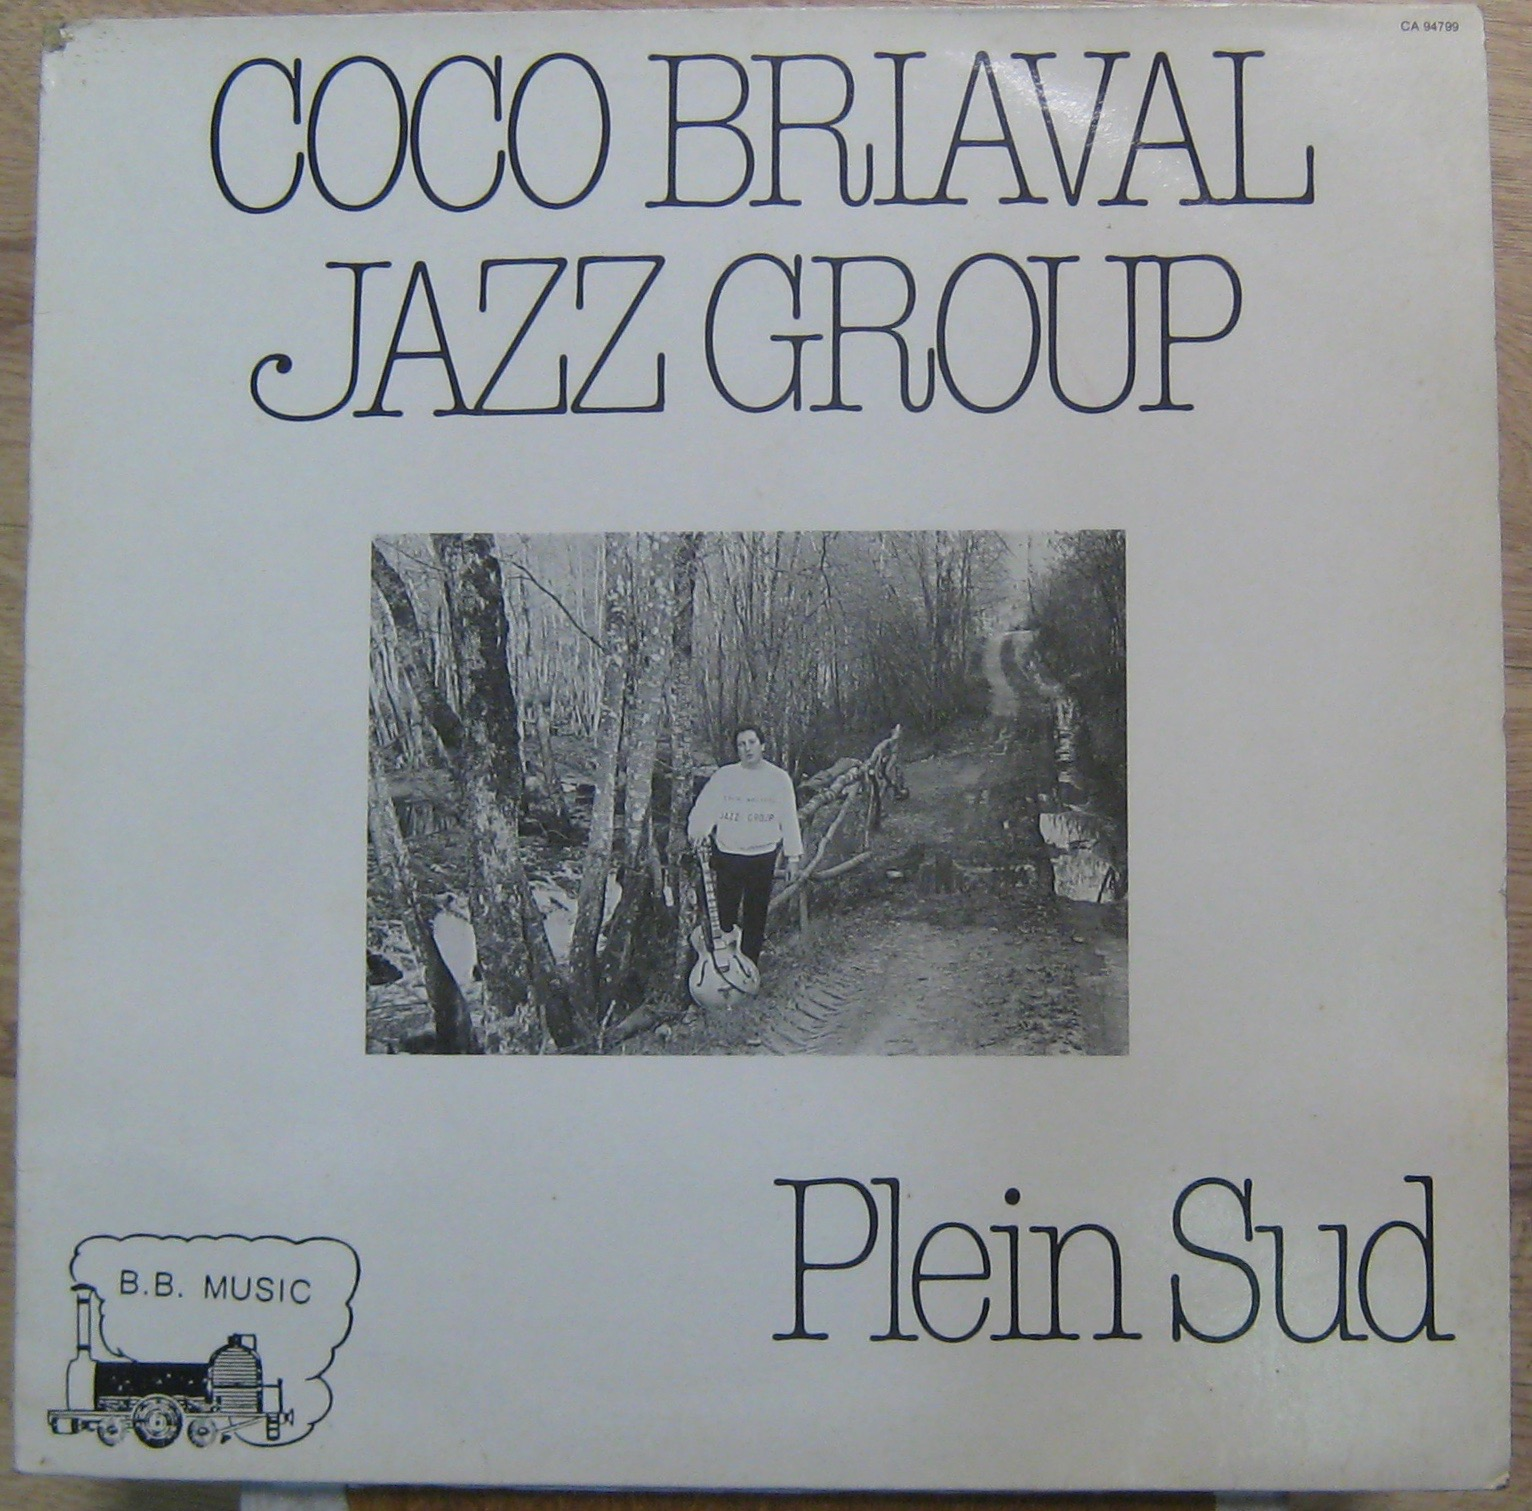 COCO BRIAVAL JAZZ GROUP - Plein Sud - 33T